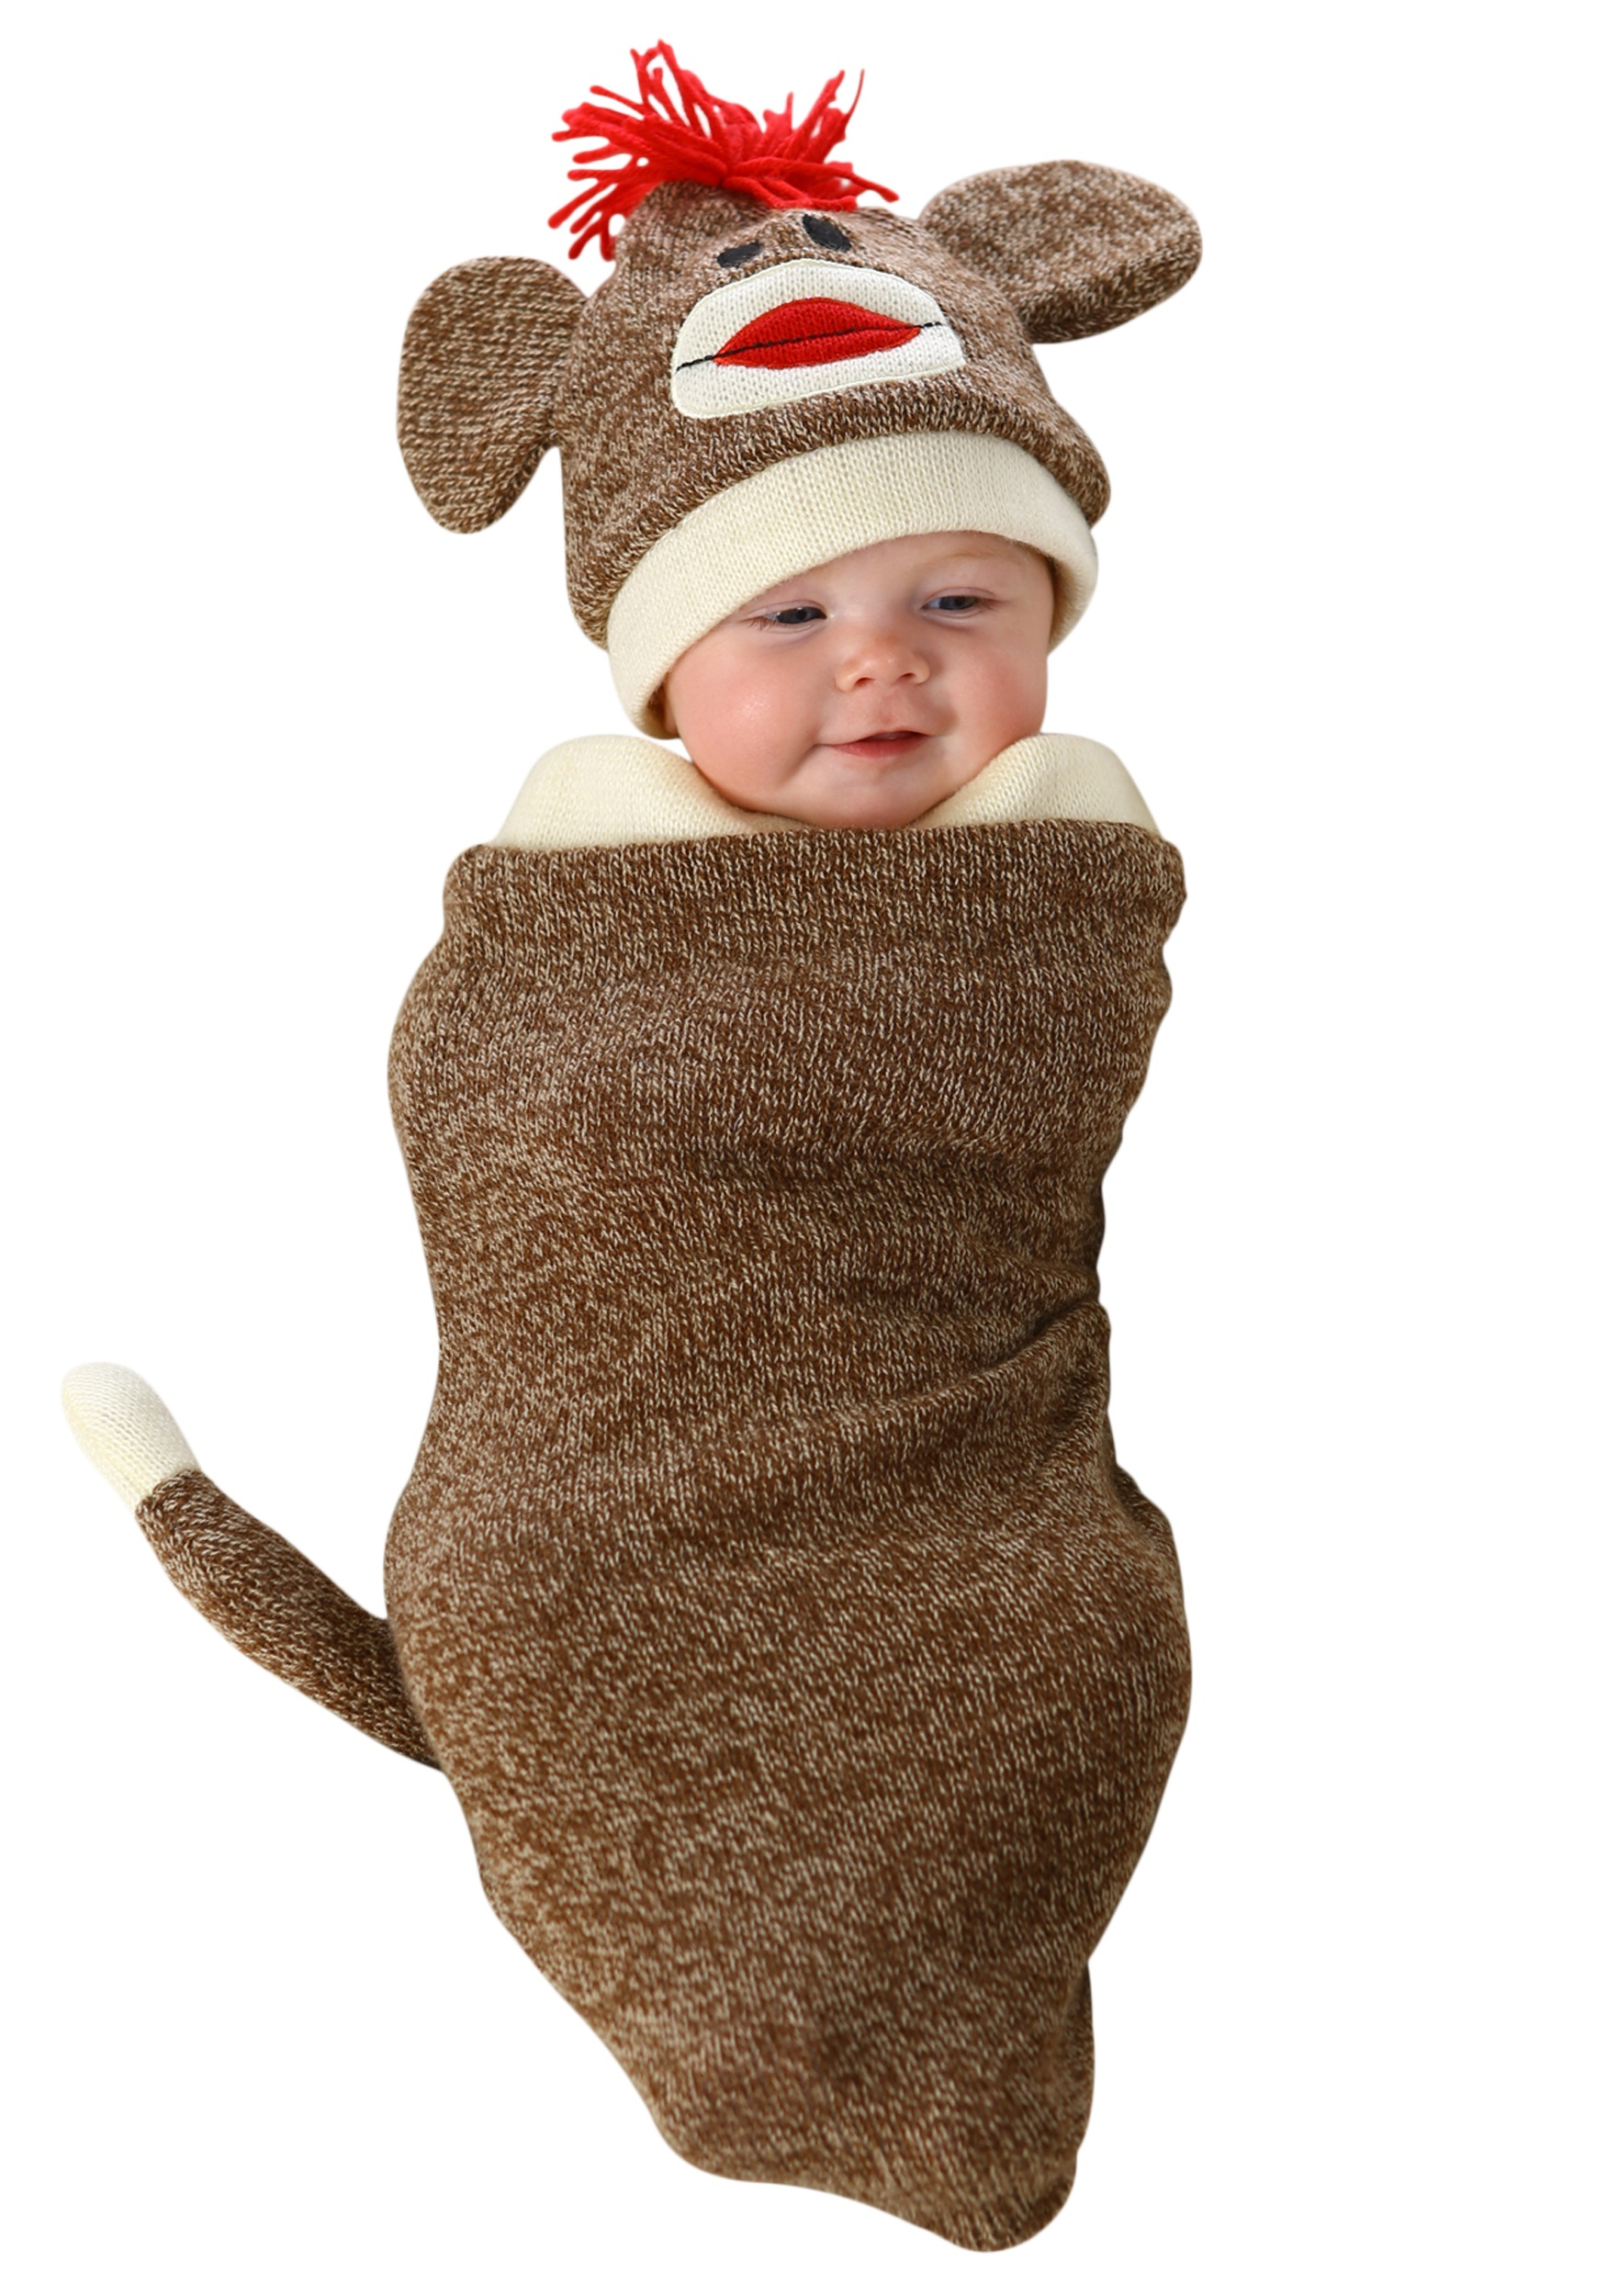 You searched for: infant halloween costumes 0 3 months! Etsy is the home to thousands of handmade, vintage, and one-of-a-kind products and gifts related to your search. No matter what you're looking for or where you are in the world, our global marketplace of sellers can help you find unique and affordable options. Let's get started!